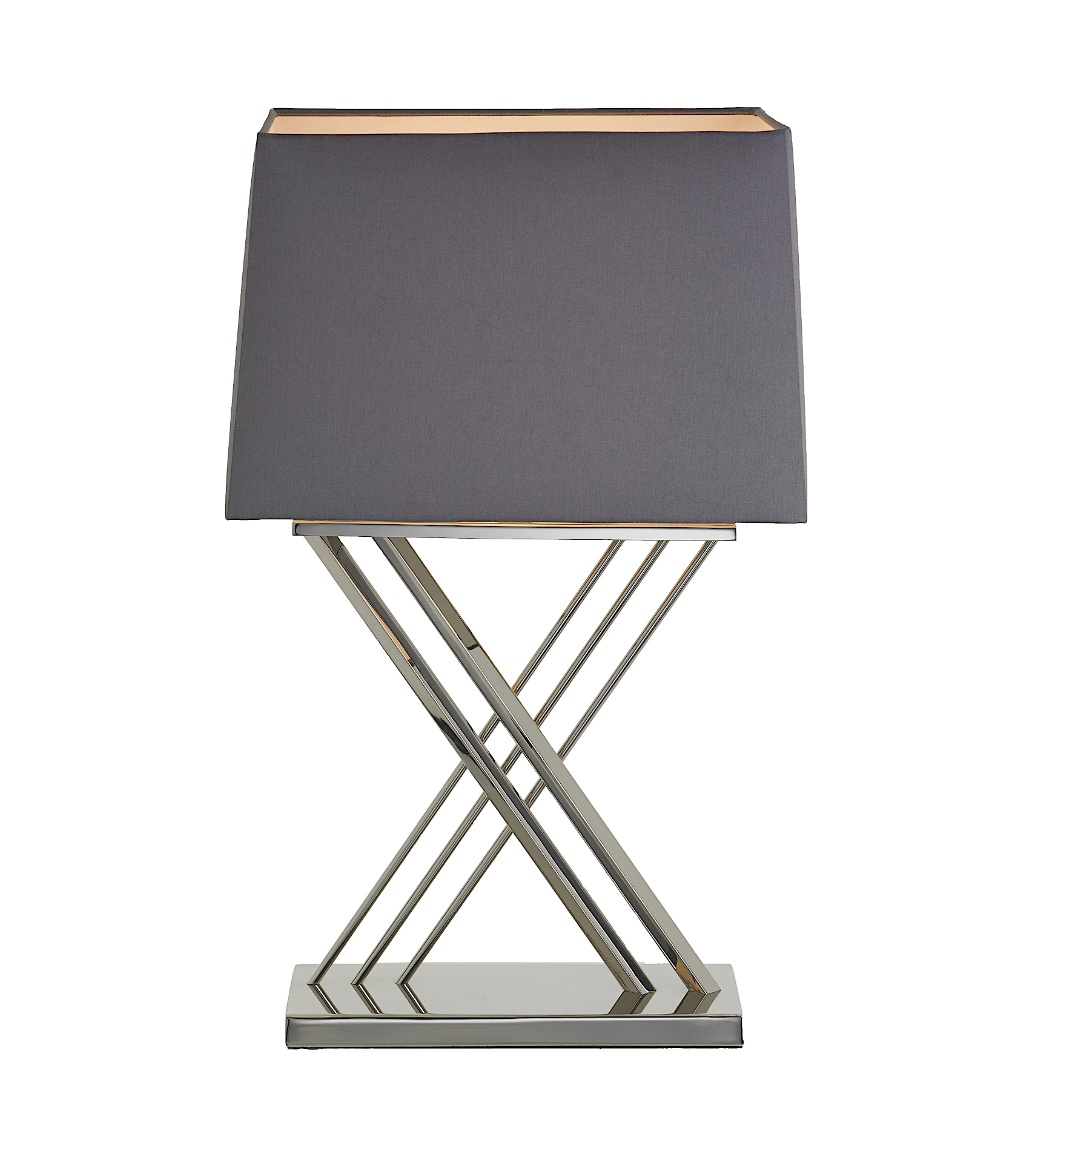 LOMBARDIA TABLE LAMP WITH SHADE-0